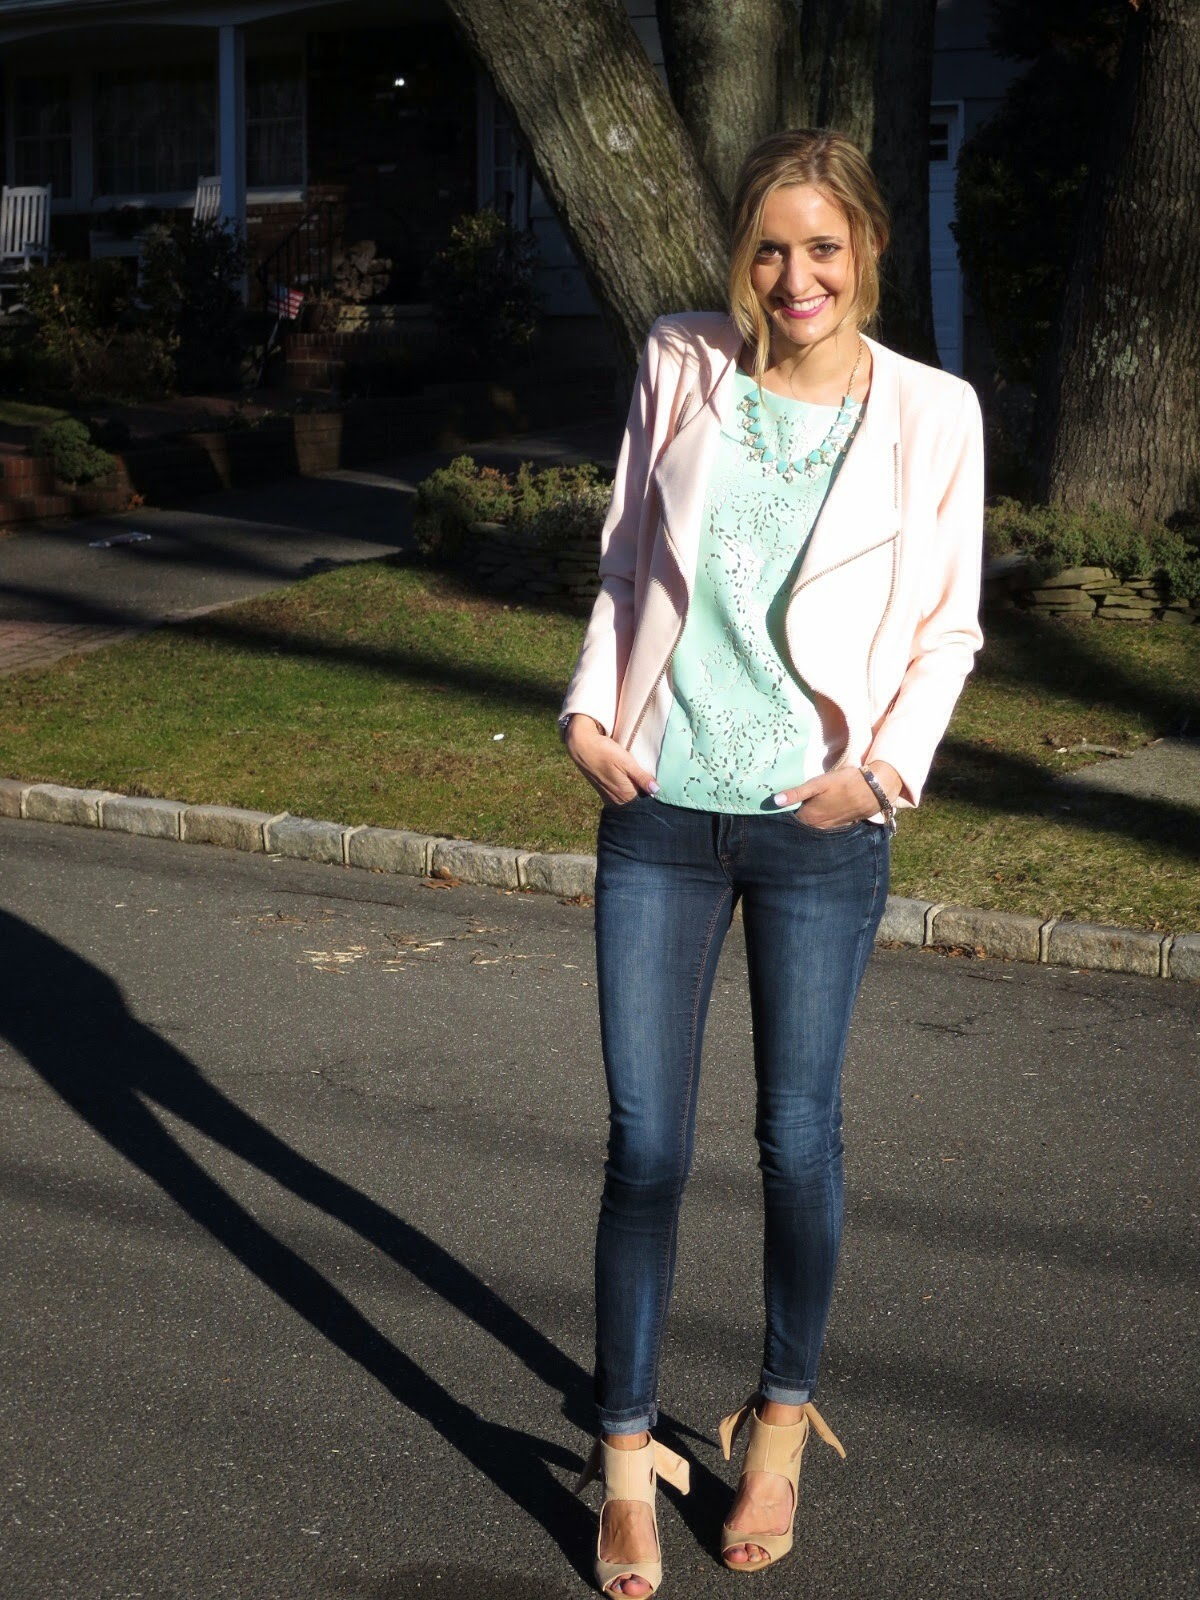 pink and mint outfit